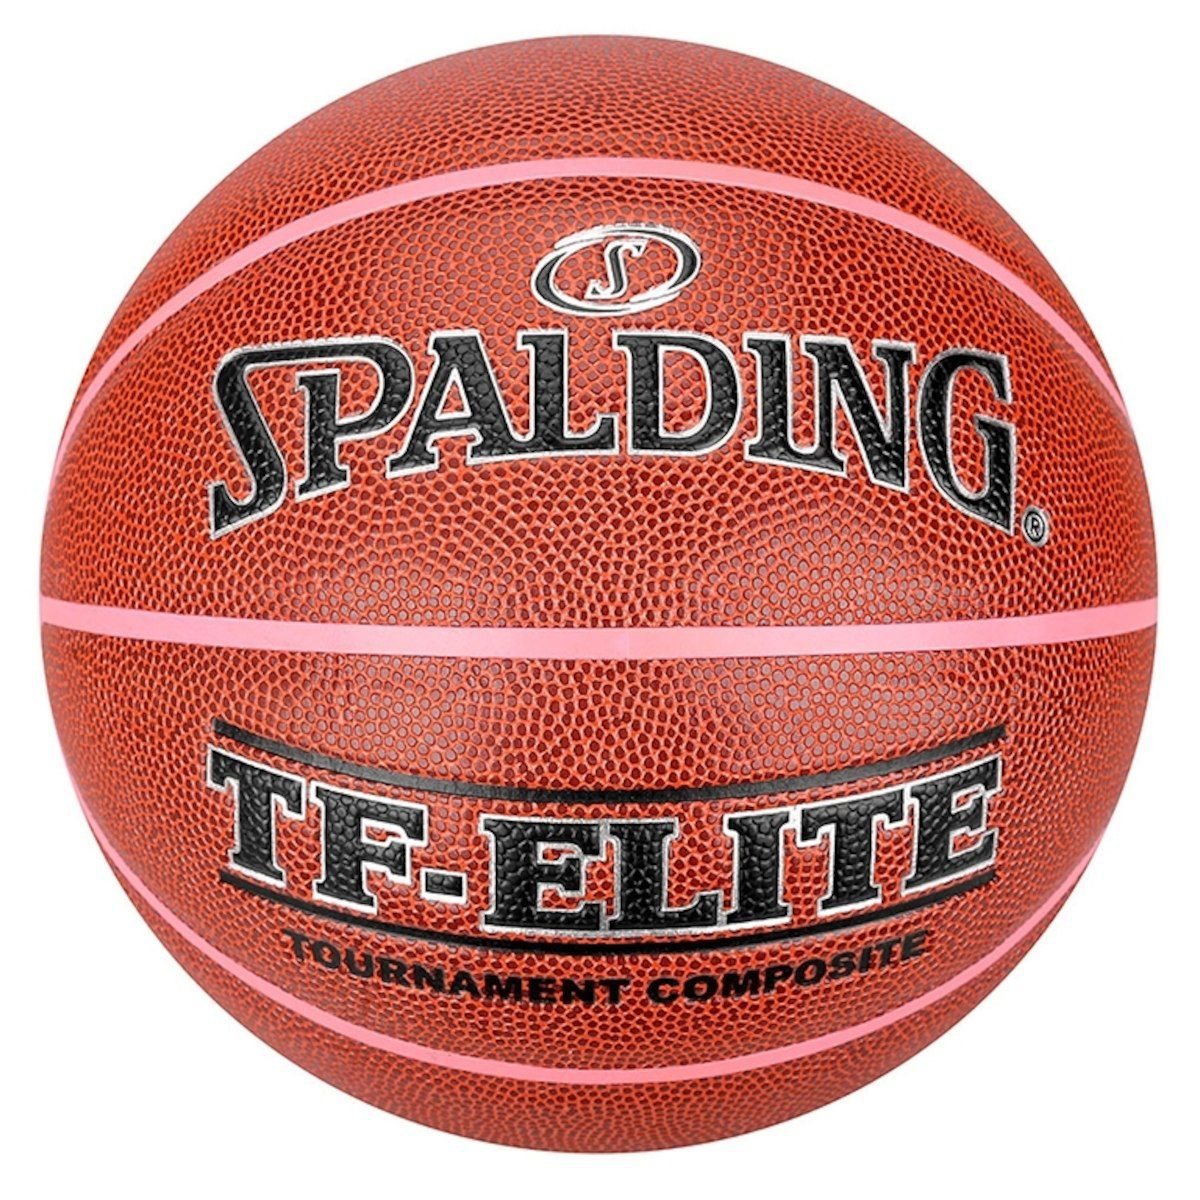 Bola Basquete Tf Elite Performance Pink Channels Spalding  T - 6